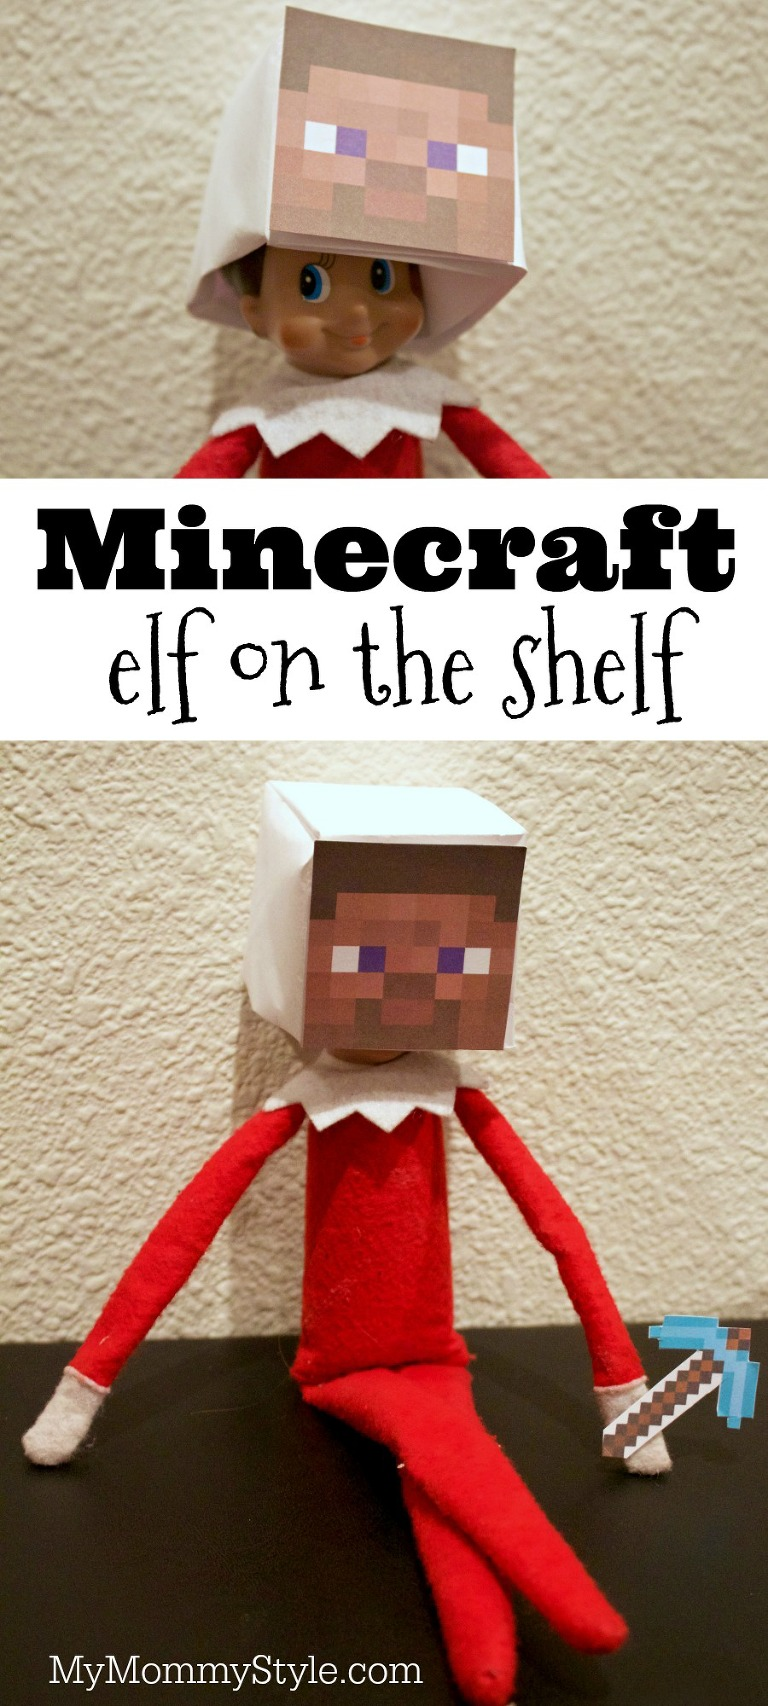 Minecraft elf on the shelf my mommy style for Elf shelf craft show